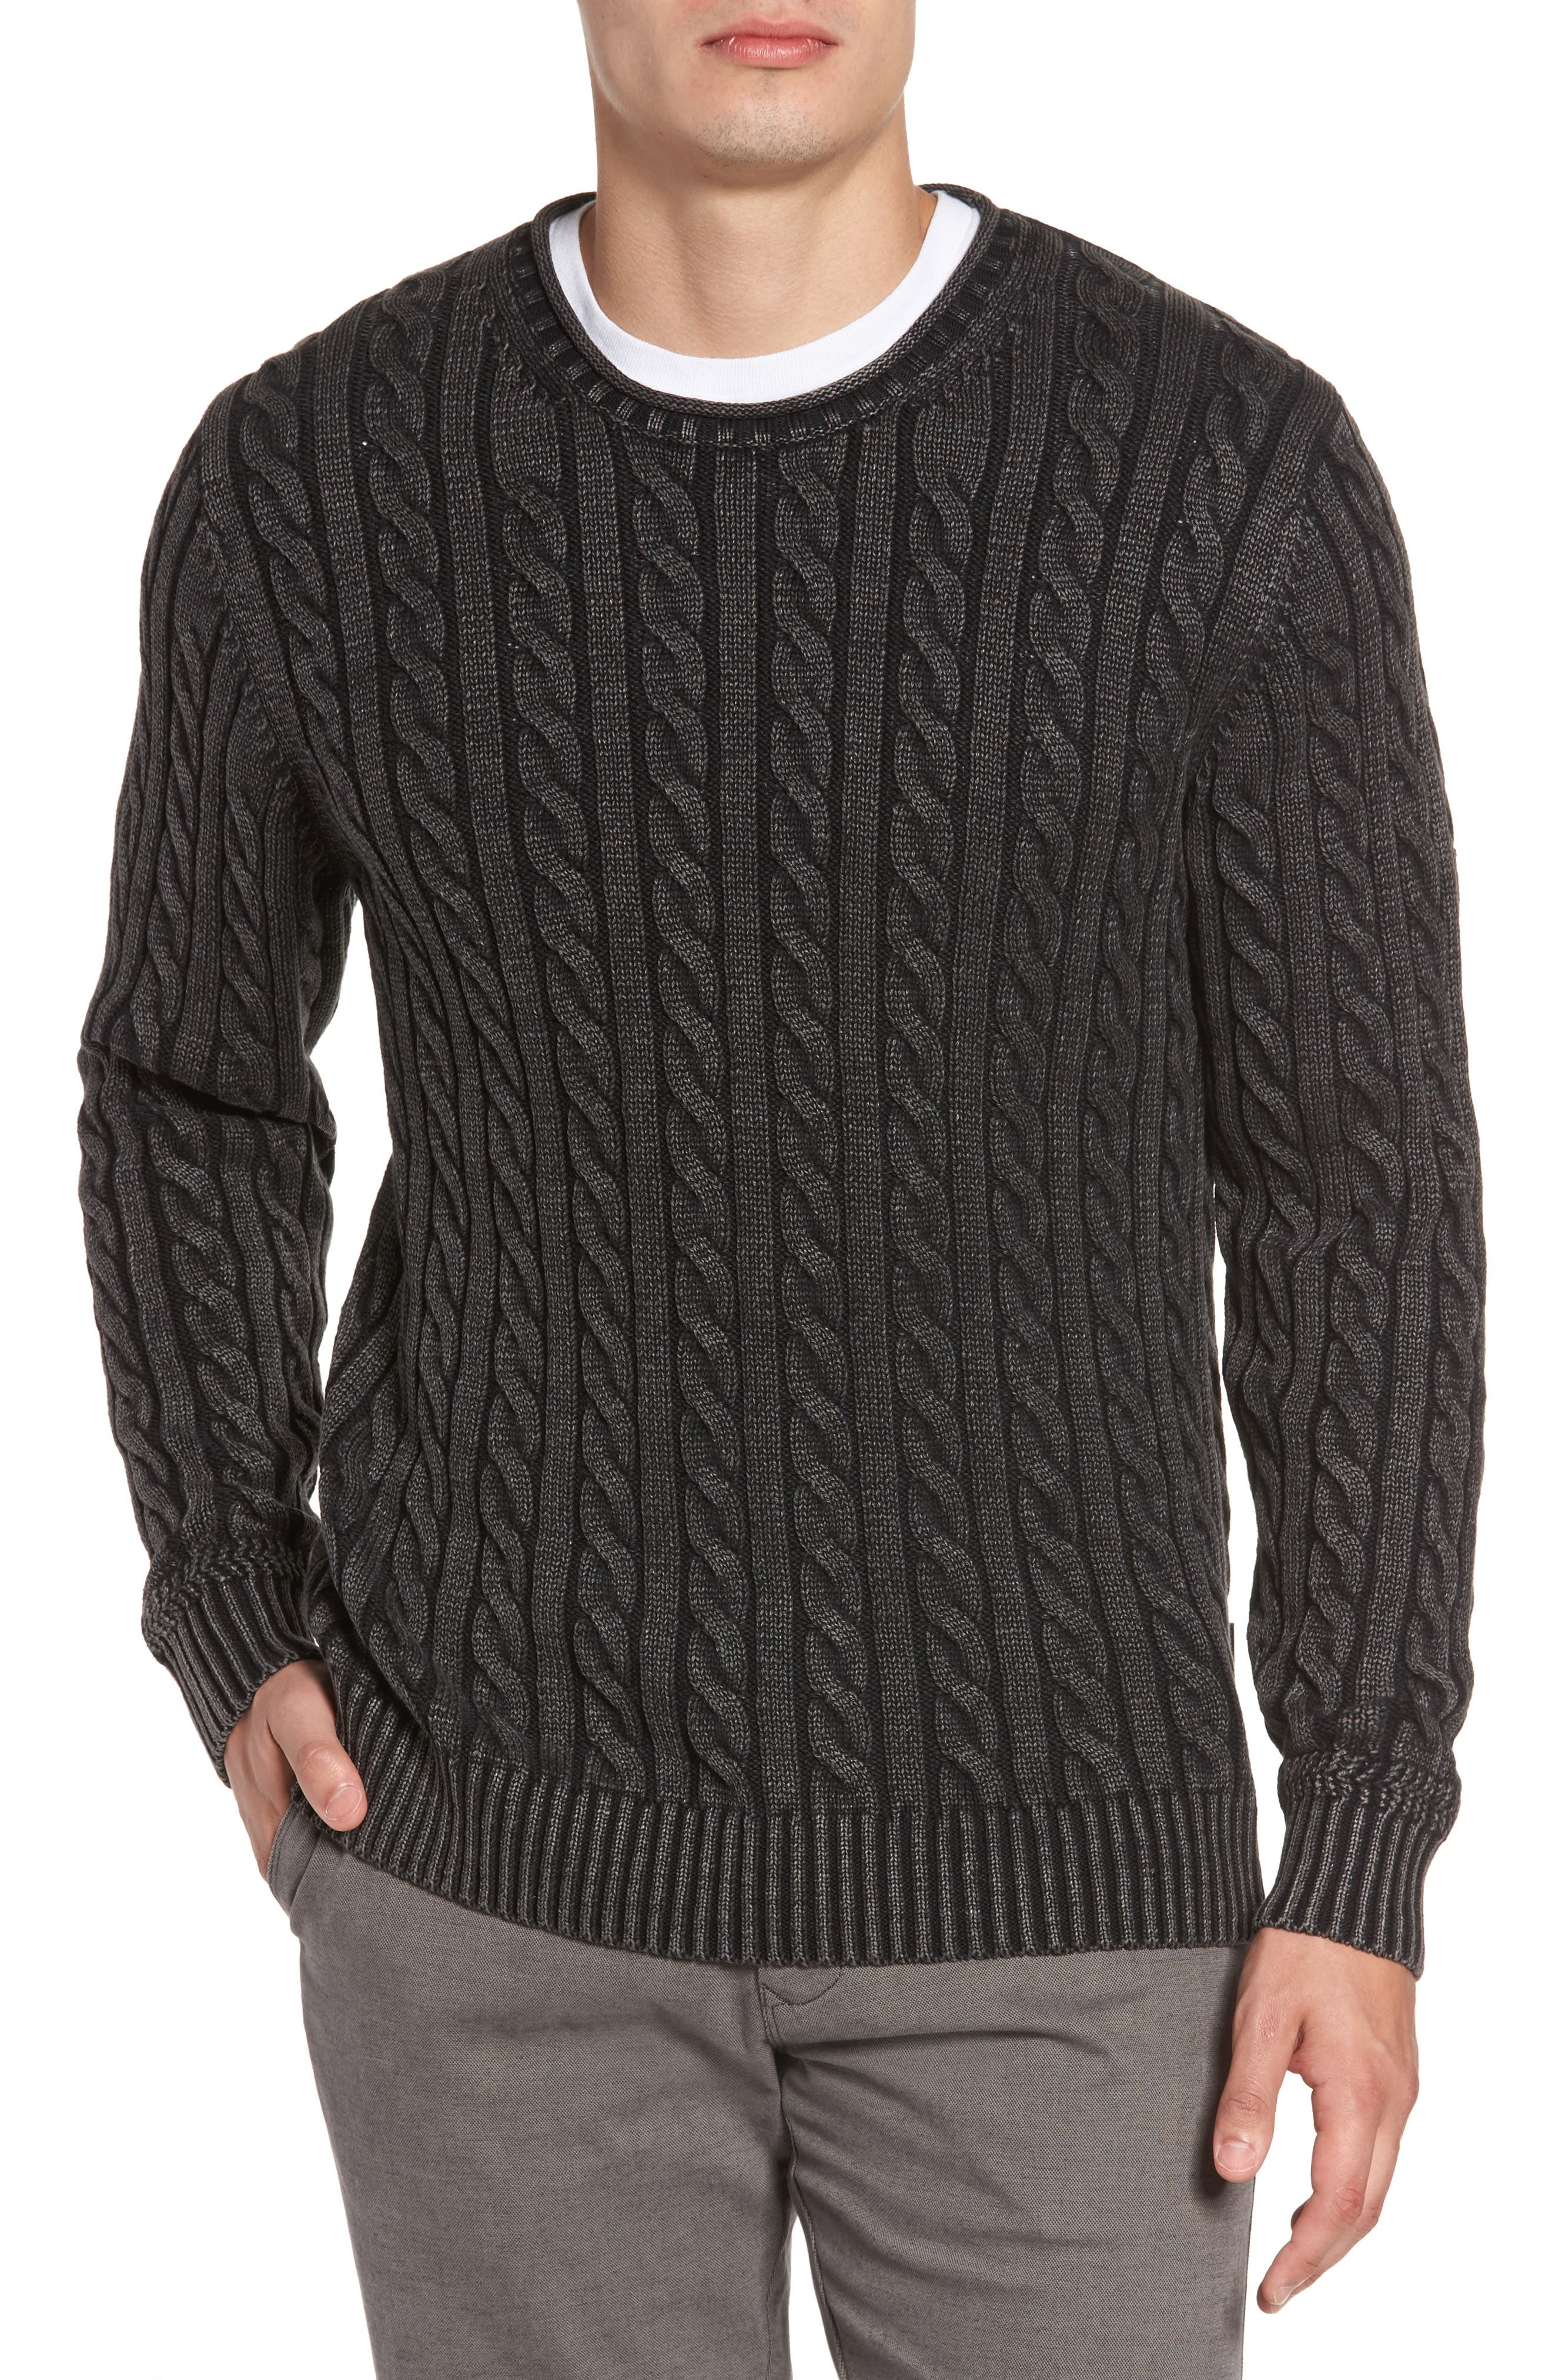 Landray Cable Knit Cotton Sweater,                             Main thumbnail 1, color,                             021